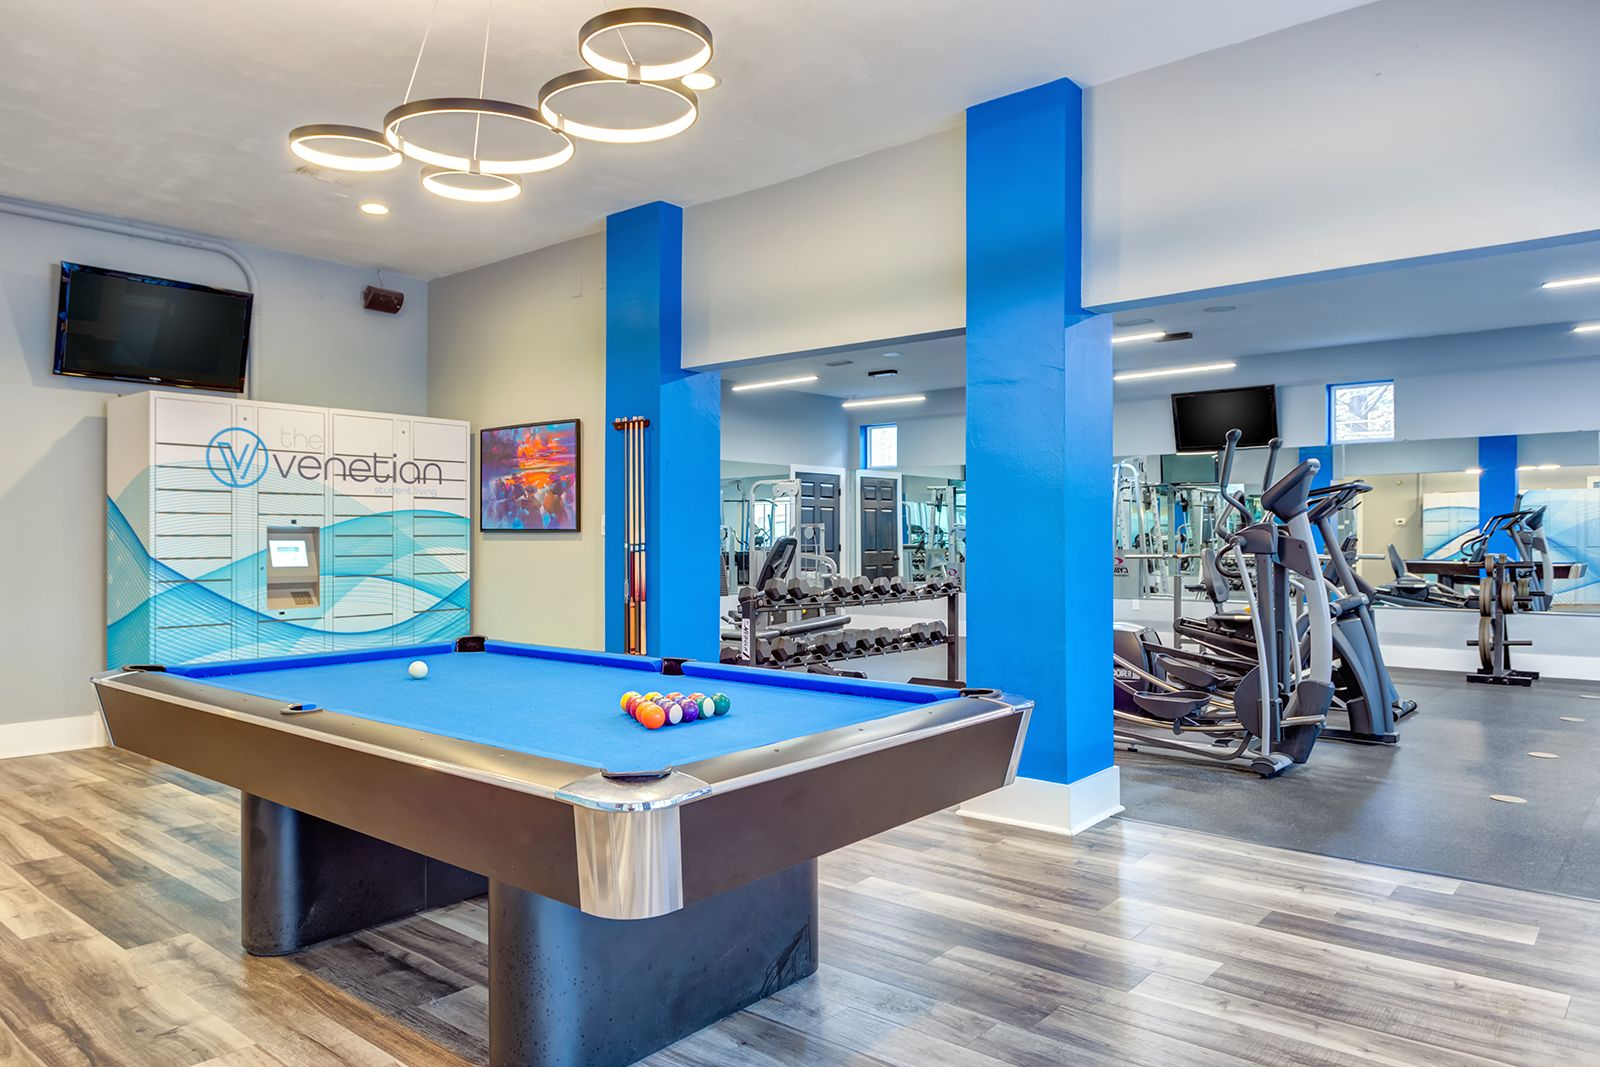 Come relax or maybe play a game of pool with your fellow